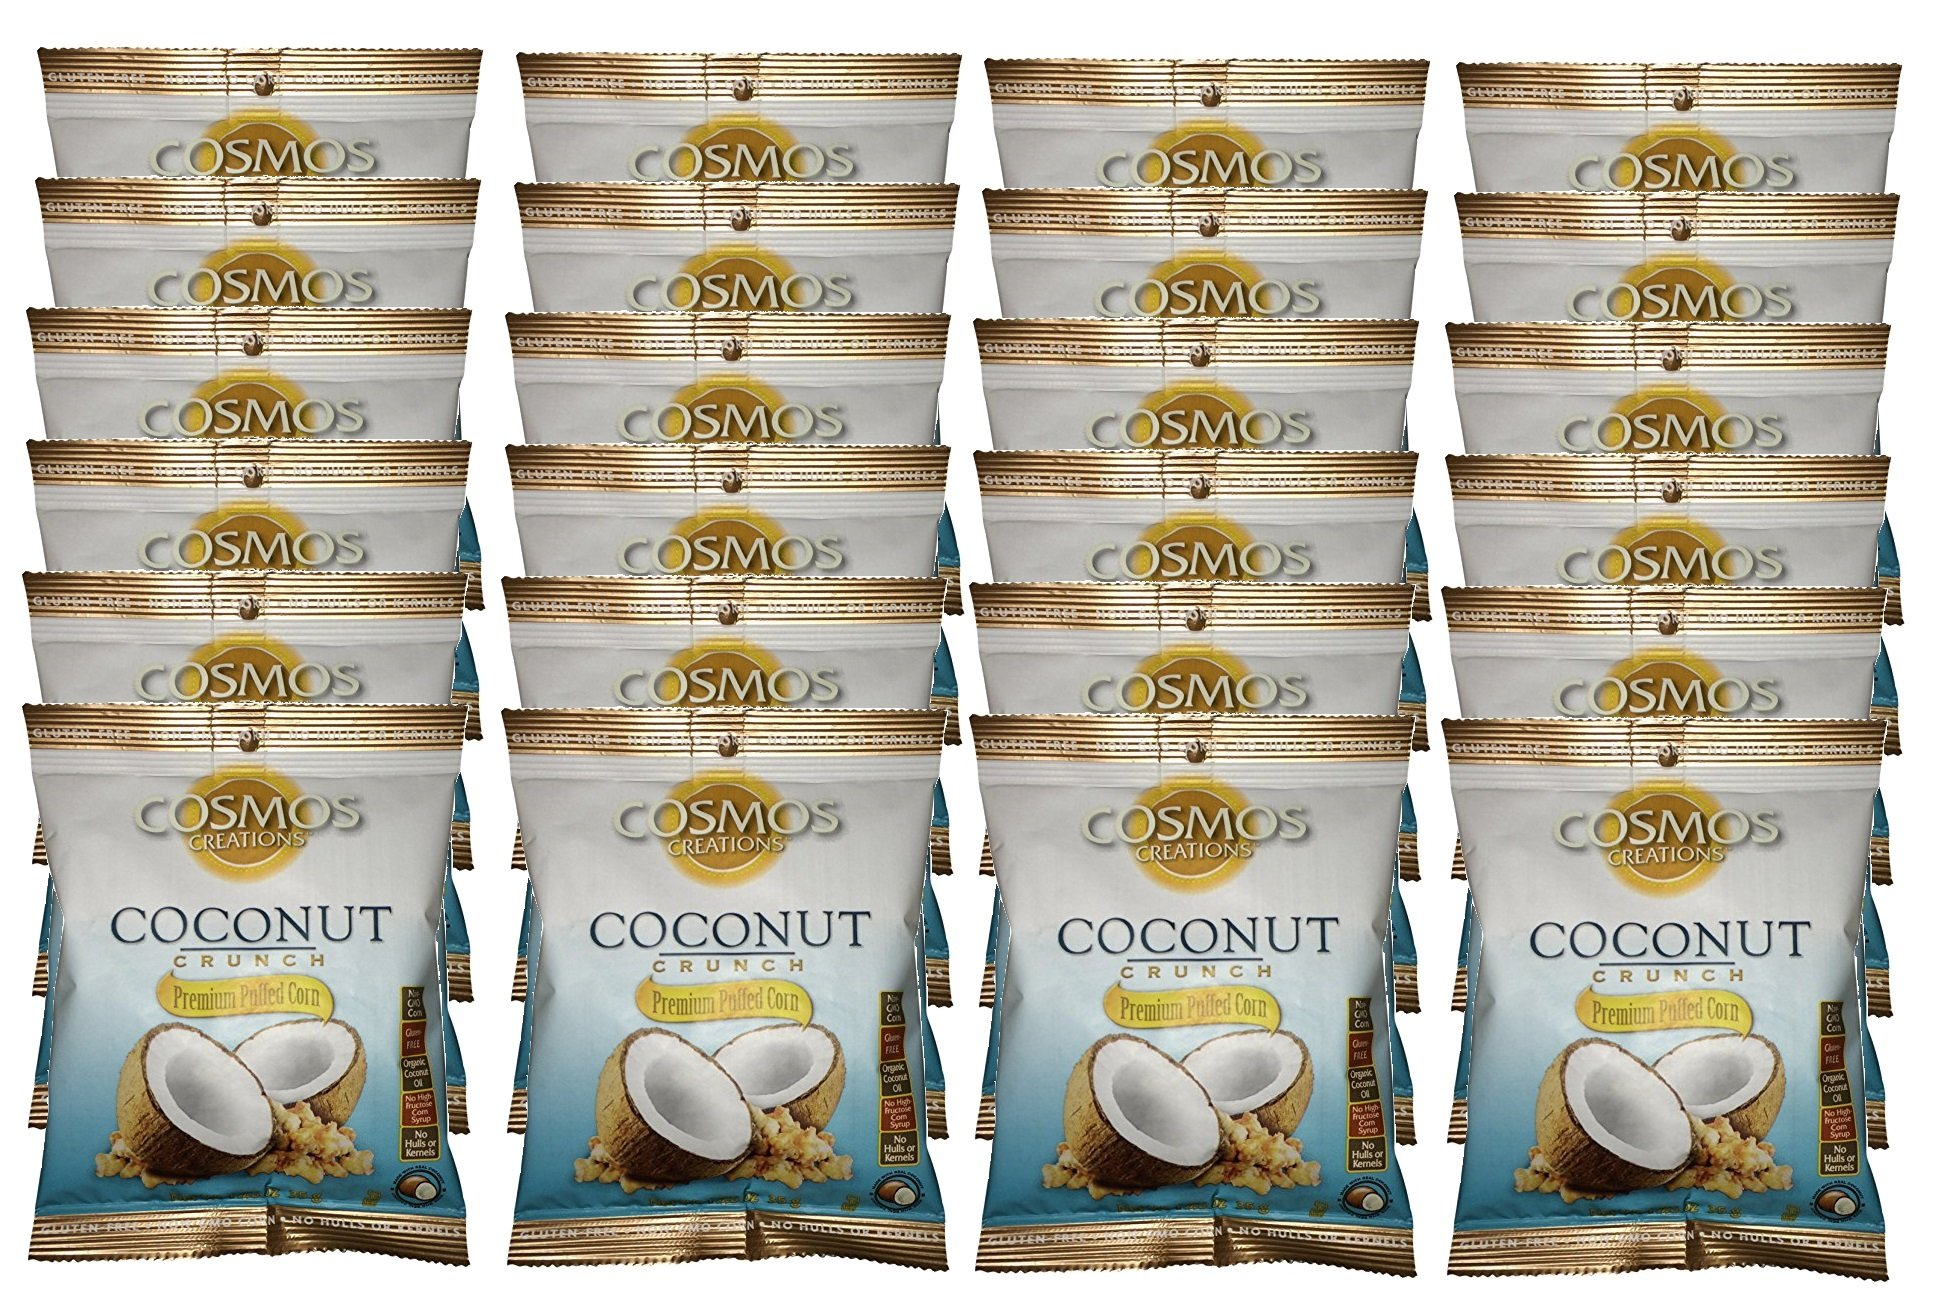 Premium Puffed Corn Snacks - Coconut Crunch Popcorn - 1.25 oz Each - 24 Bags Value Pack